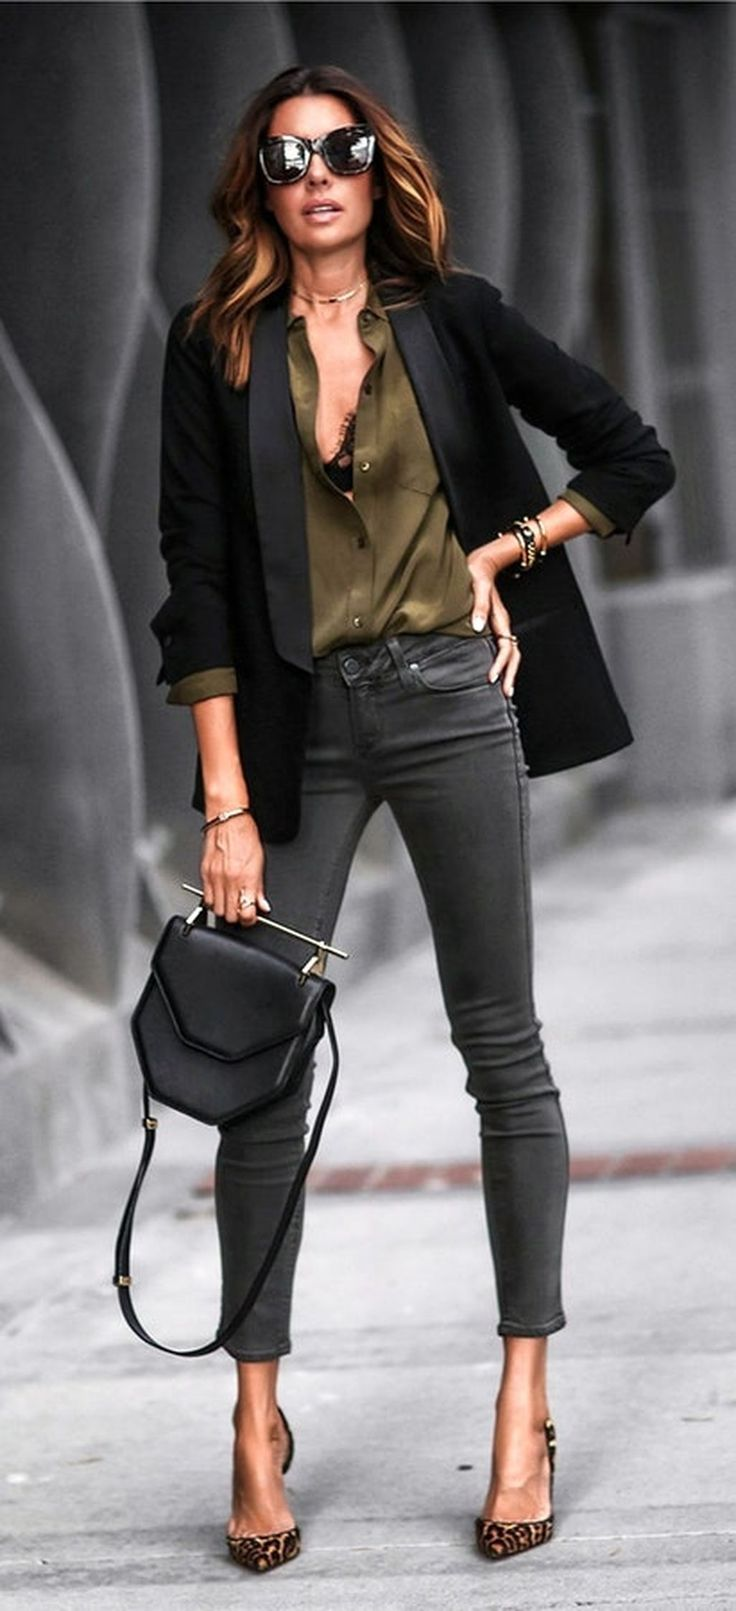 Cool 41 Spring And Summer Clothing Inspiration For Women 2018. More at https://wear4trend.com/2018/02/20/41-spring-summer-clothing-inspiration-women-2018/